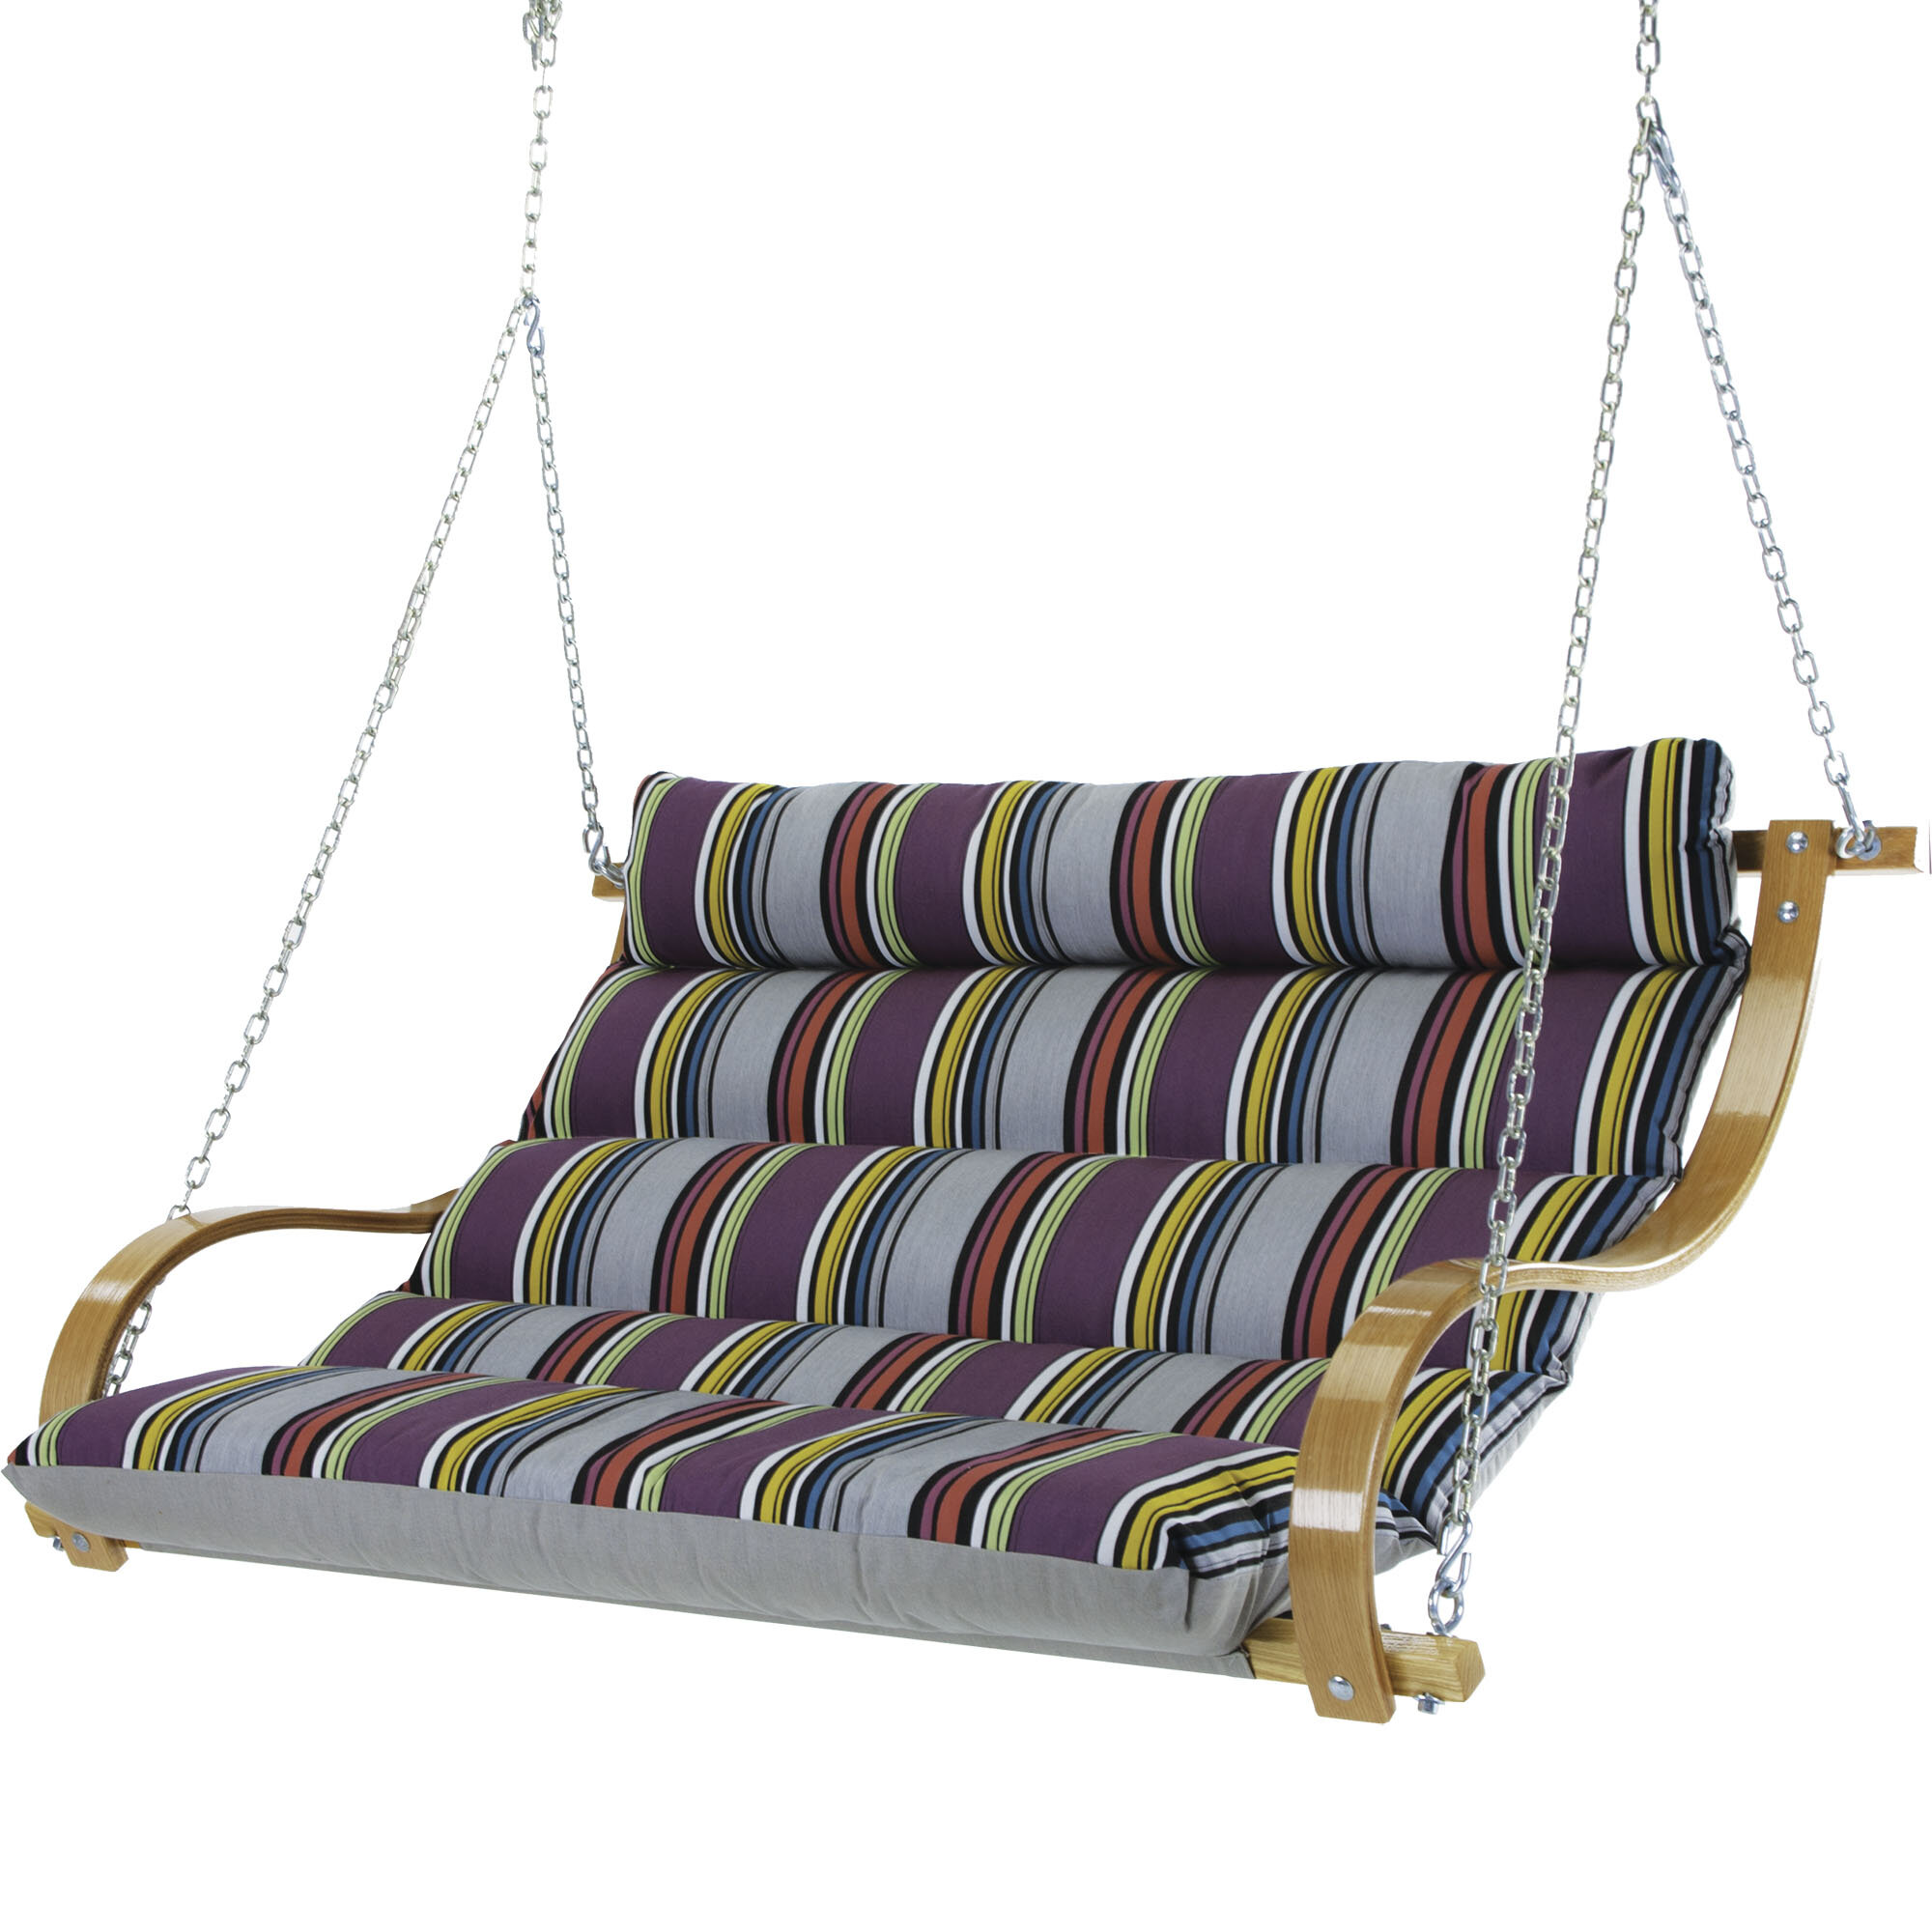 Laude Run Ladner Deluxe Cushioned Double Porch Swing Reviews Wayfair